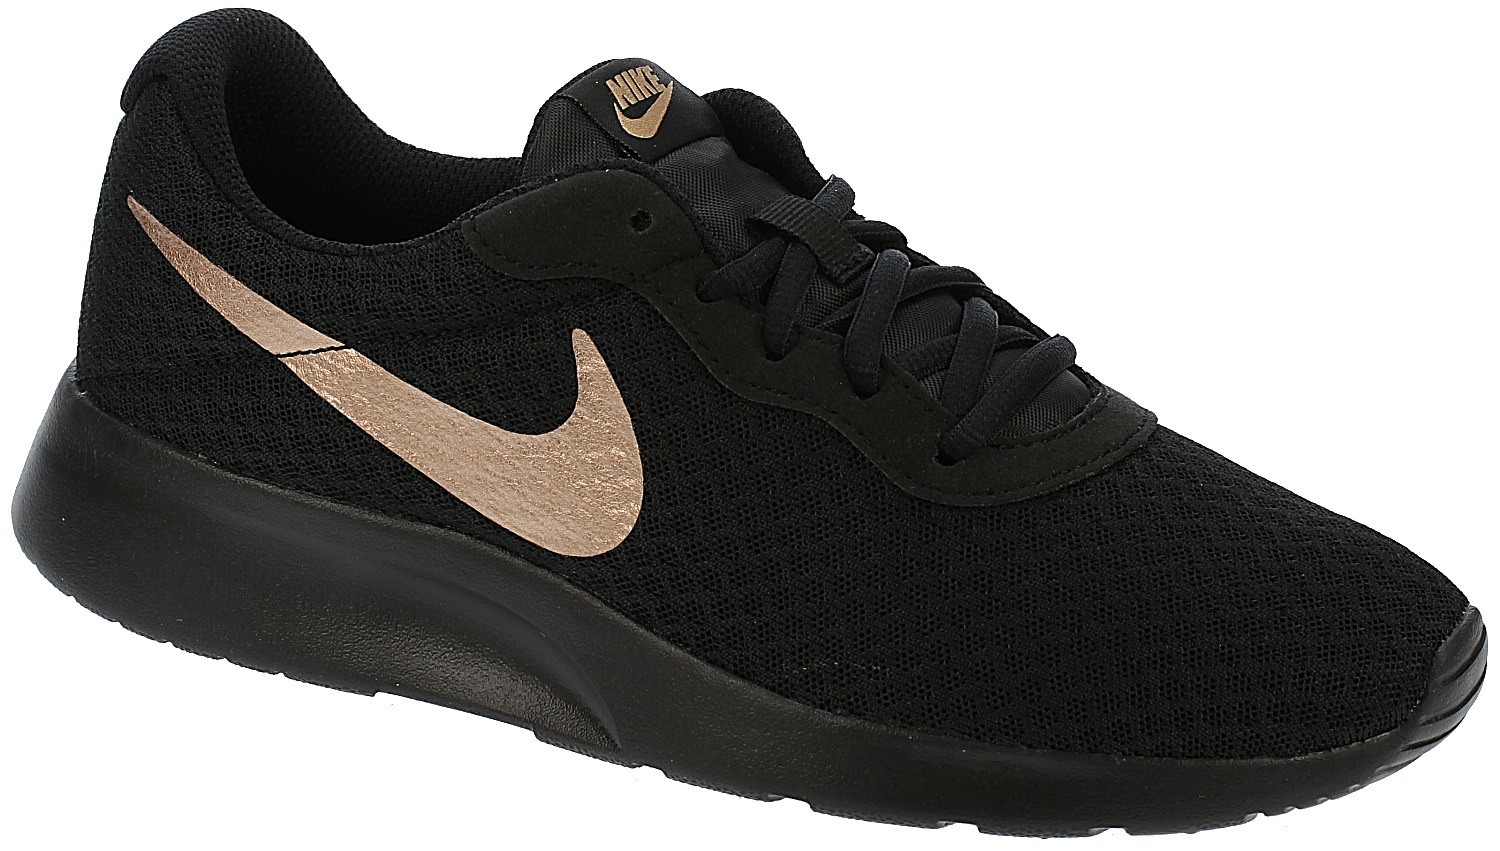 boty Nike Tanjun - Black Metallic Red Bronze 40 f29f5c0eda